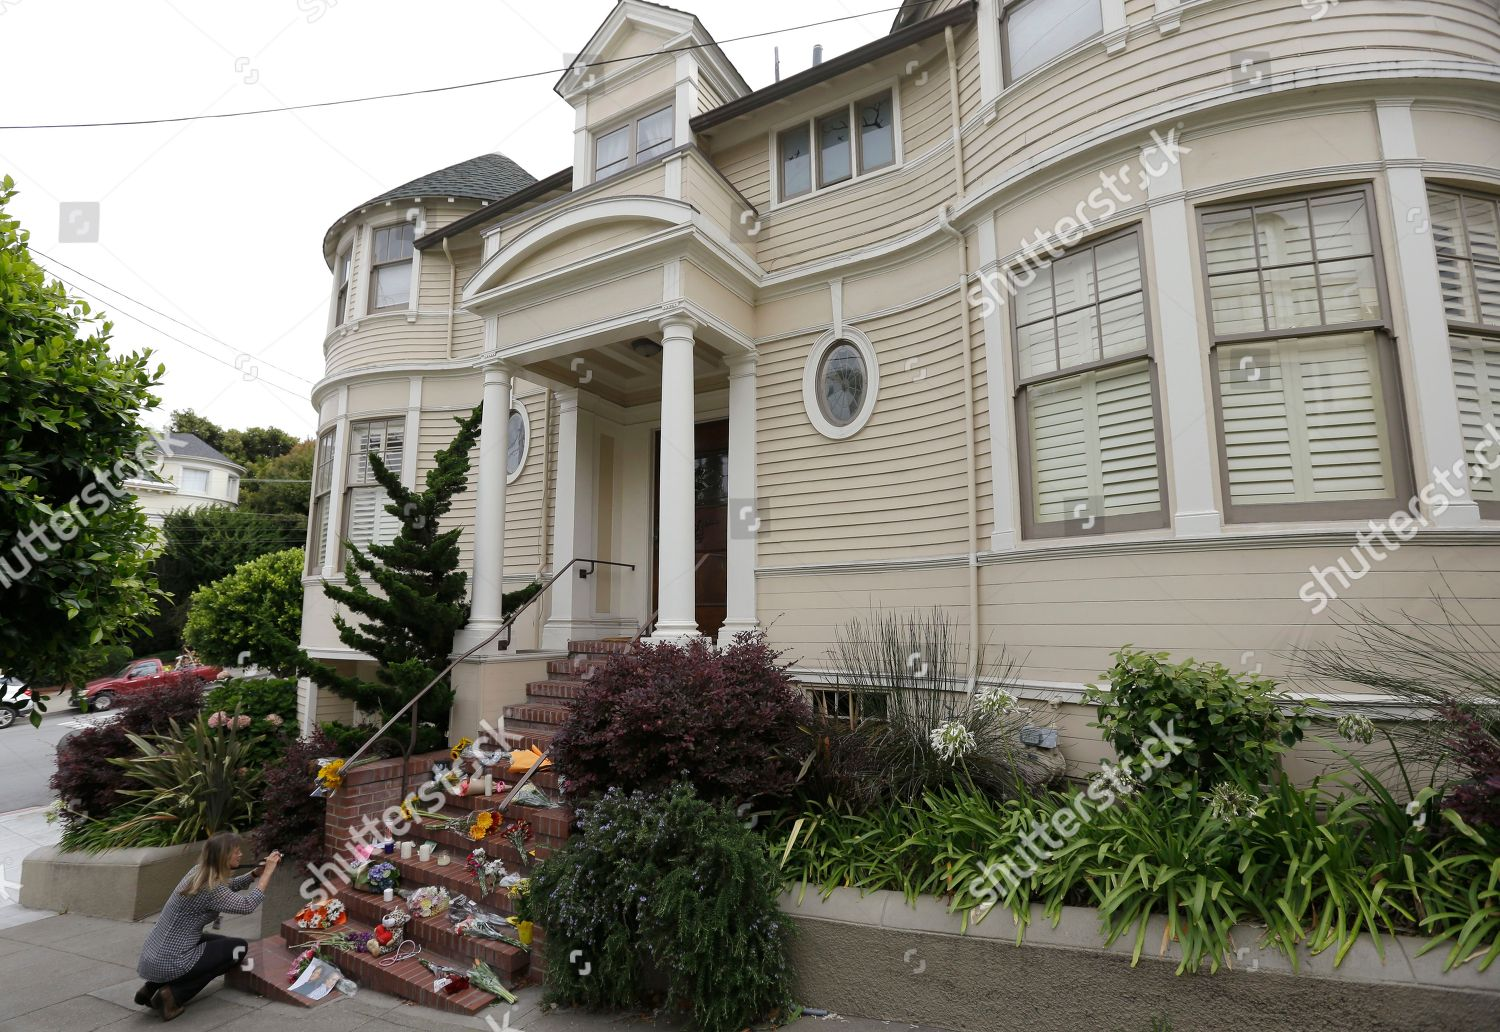 Mrs Doubtfire House Woman Photographs Mementos Which Editorial Stock